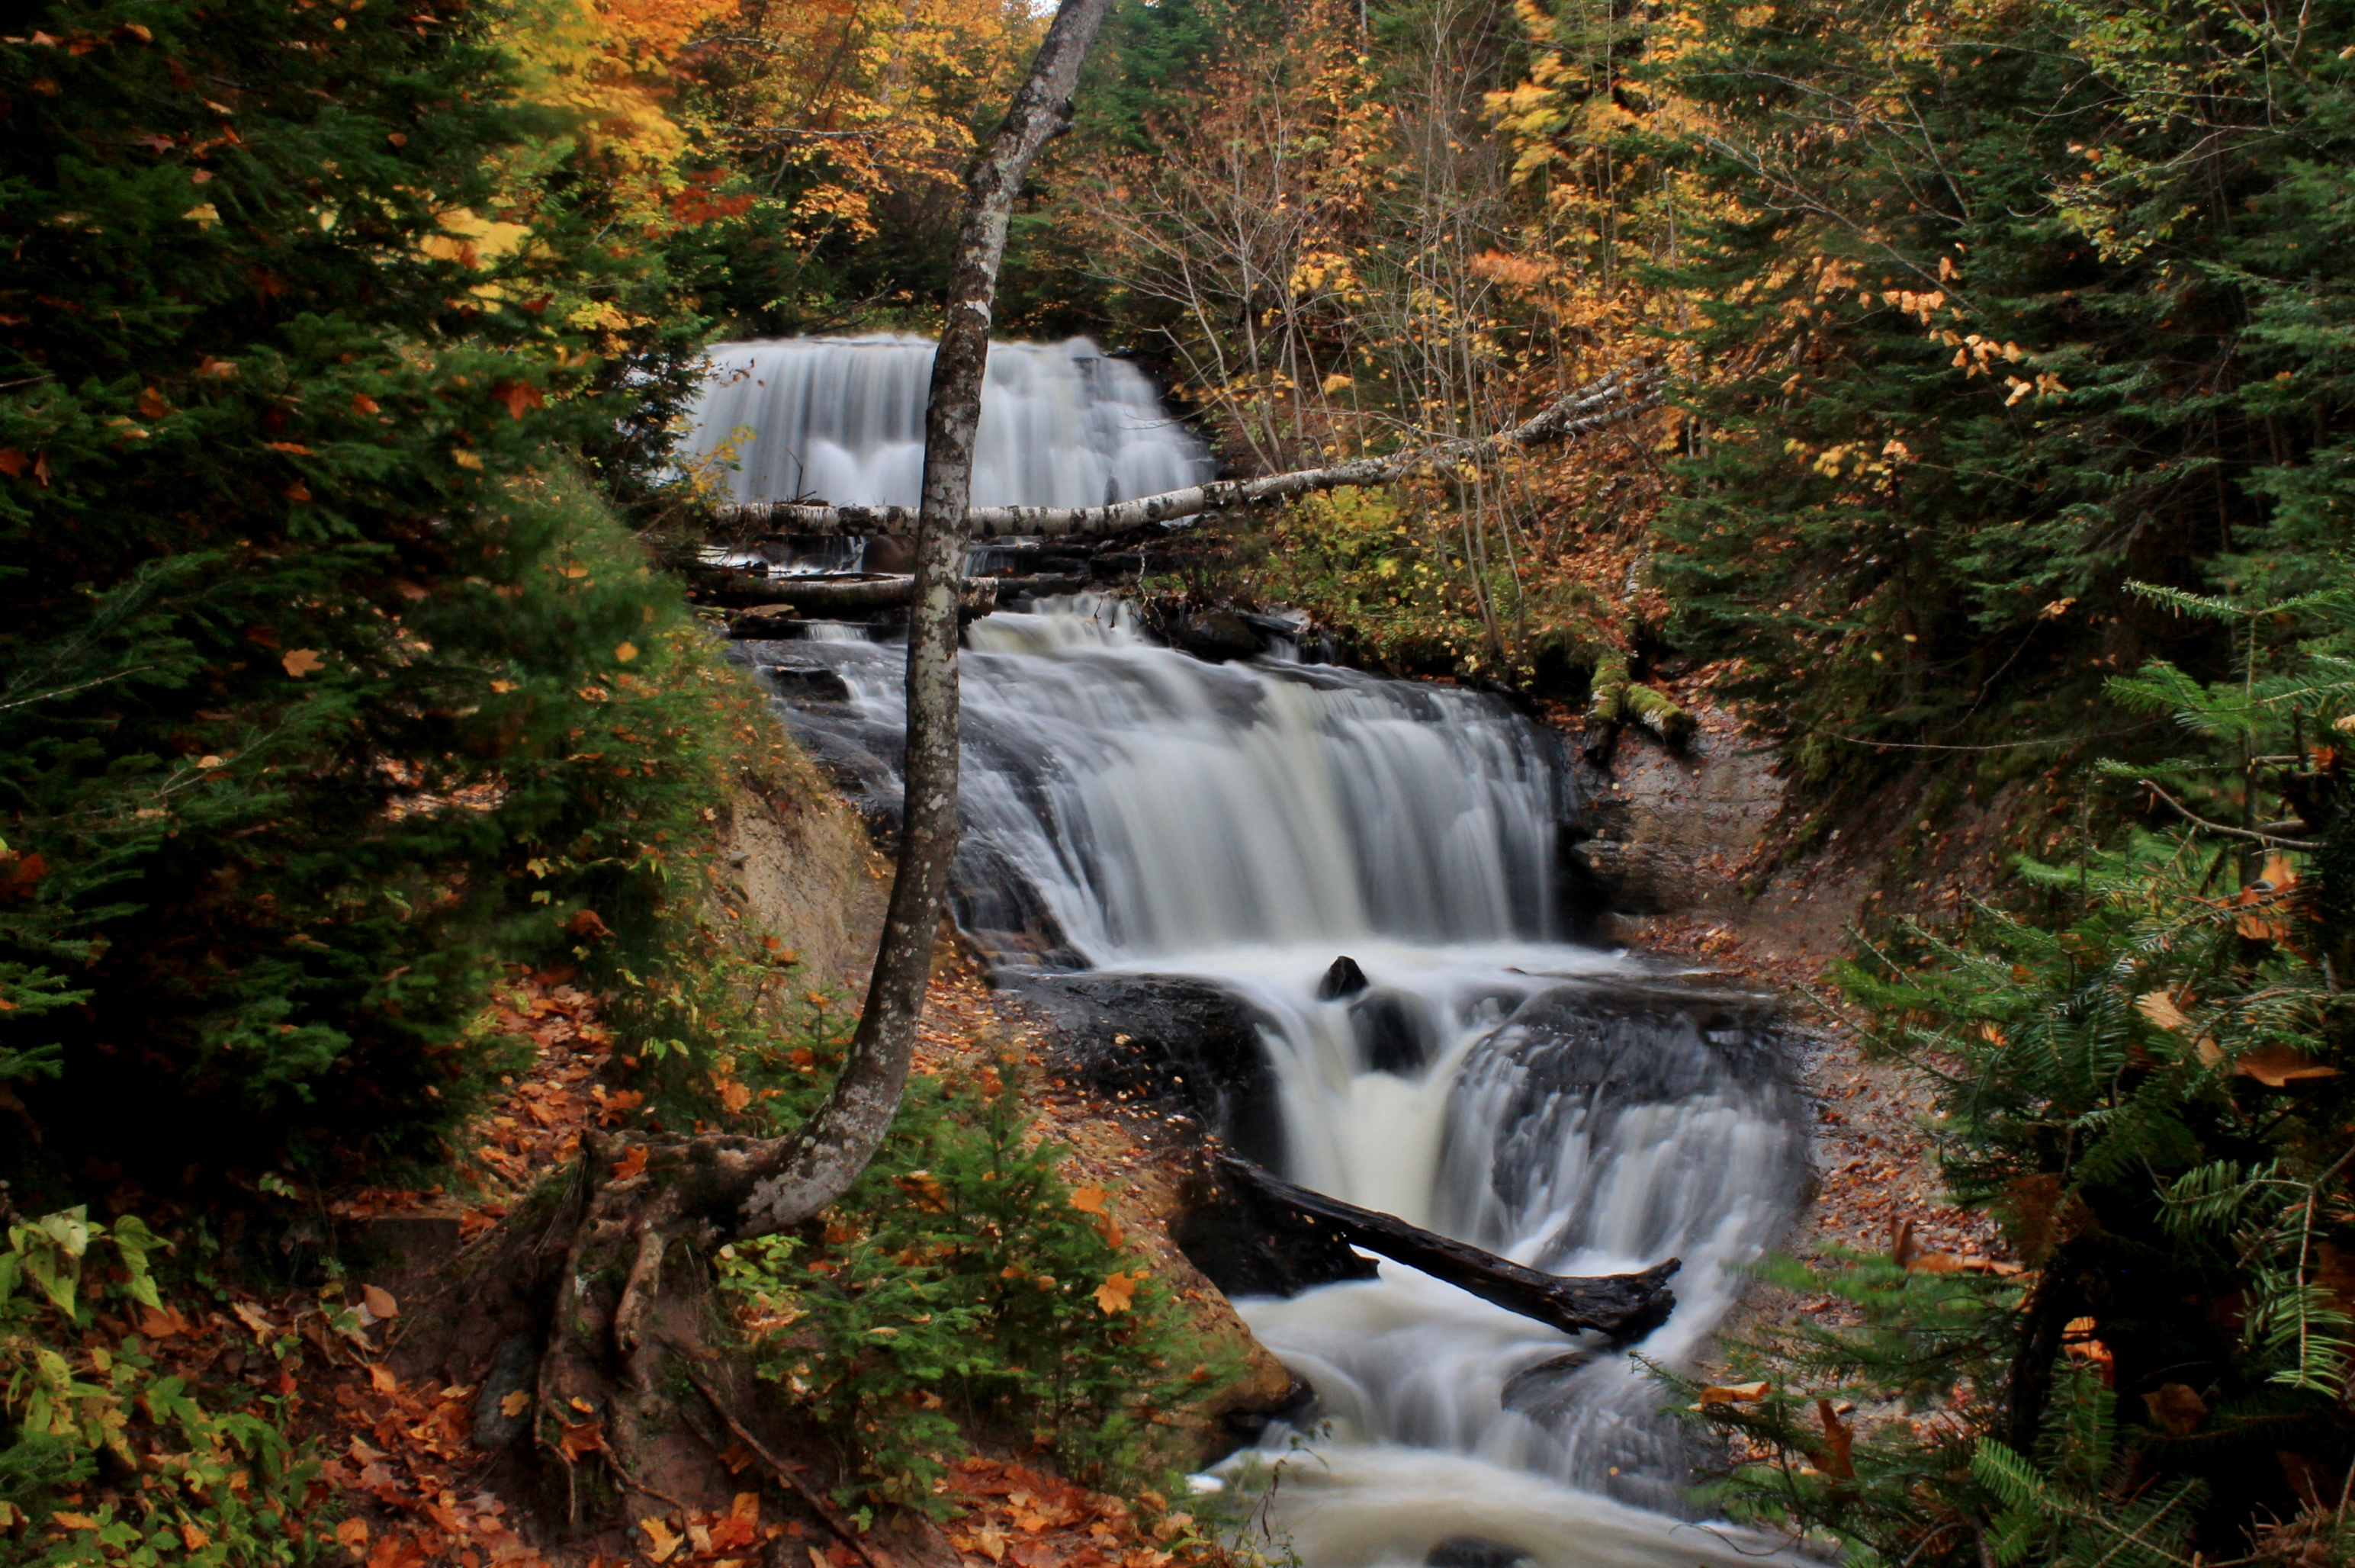 Bond Falls Michigan Map.A List Of Enchanting Michigan Waterfalls To Visit Year Round Michigan